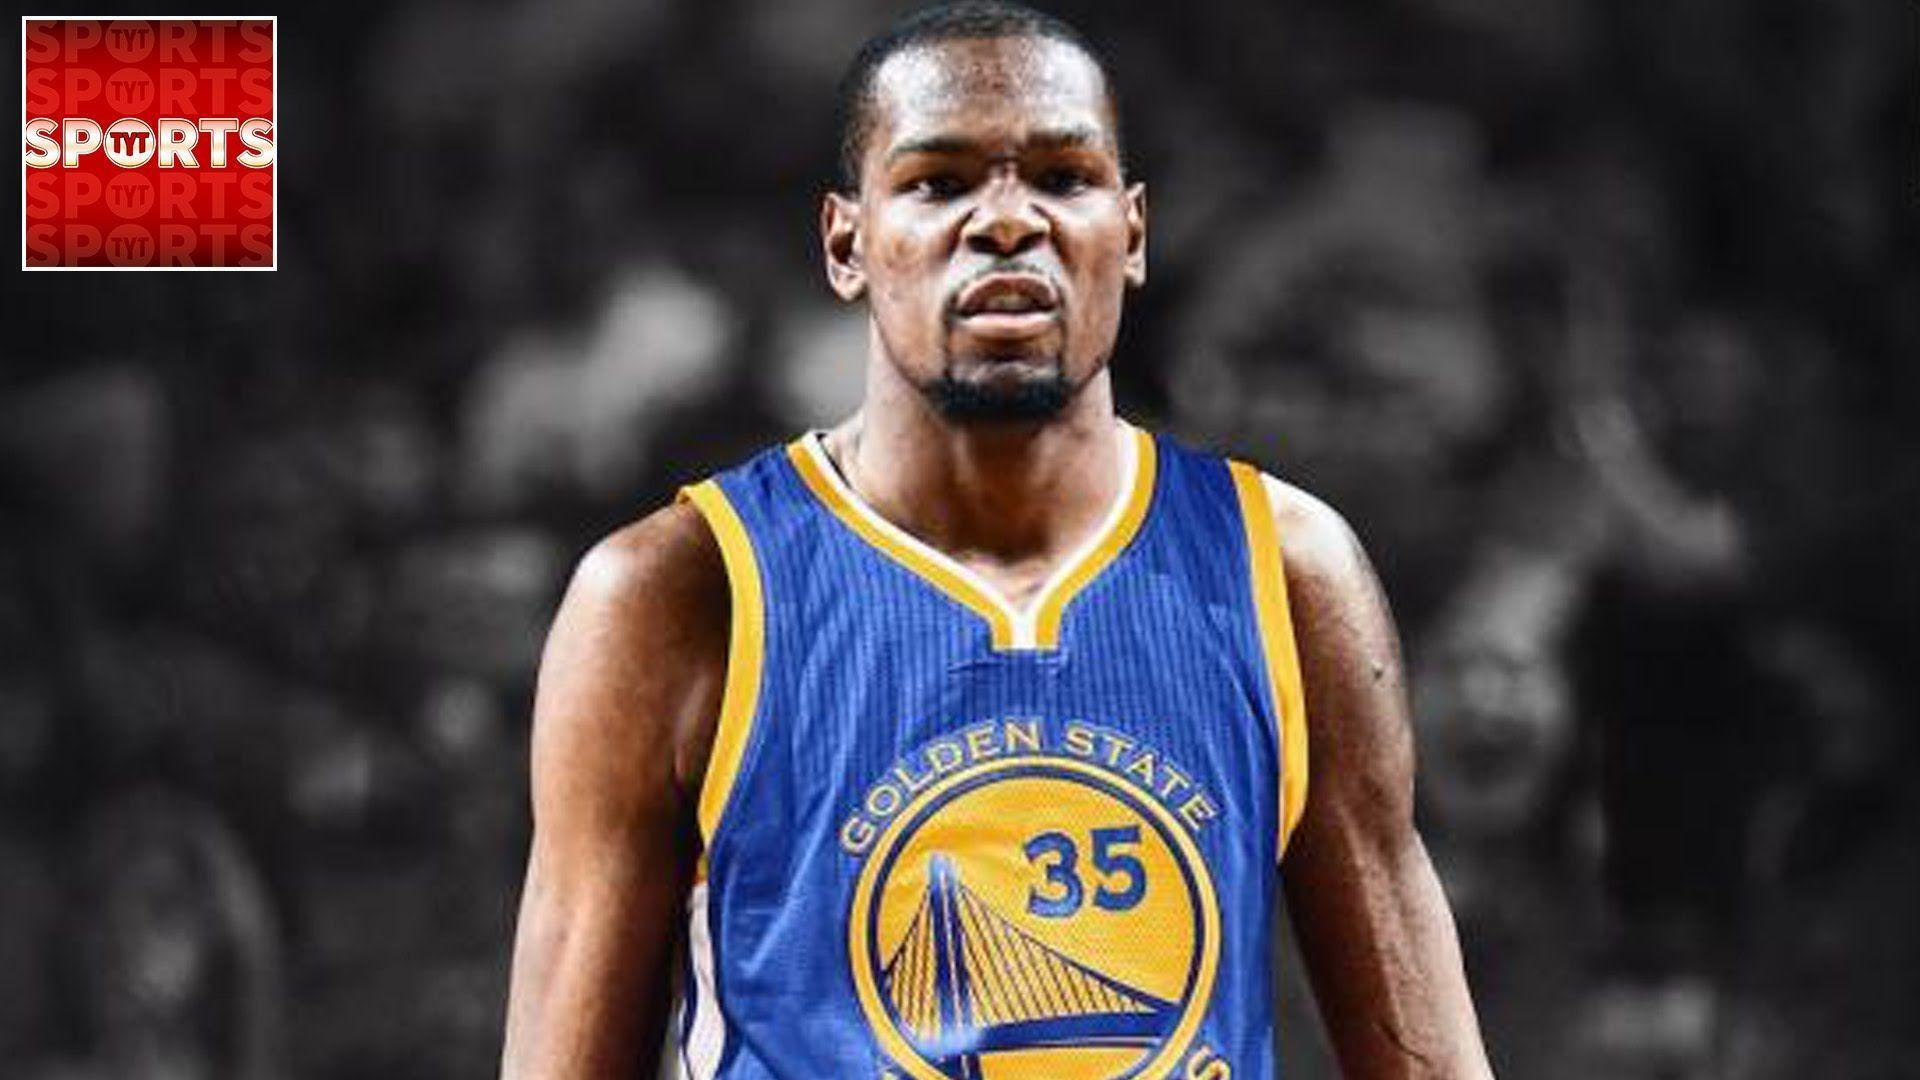 KEVIN DURANT SIGNS WITH THE WARRIORS